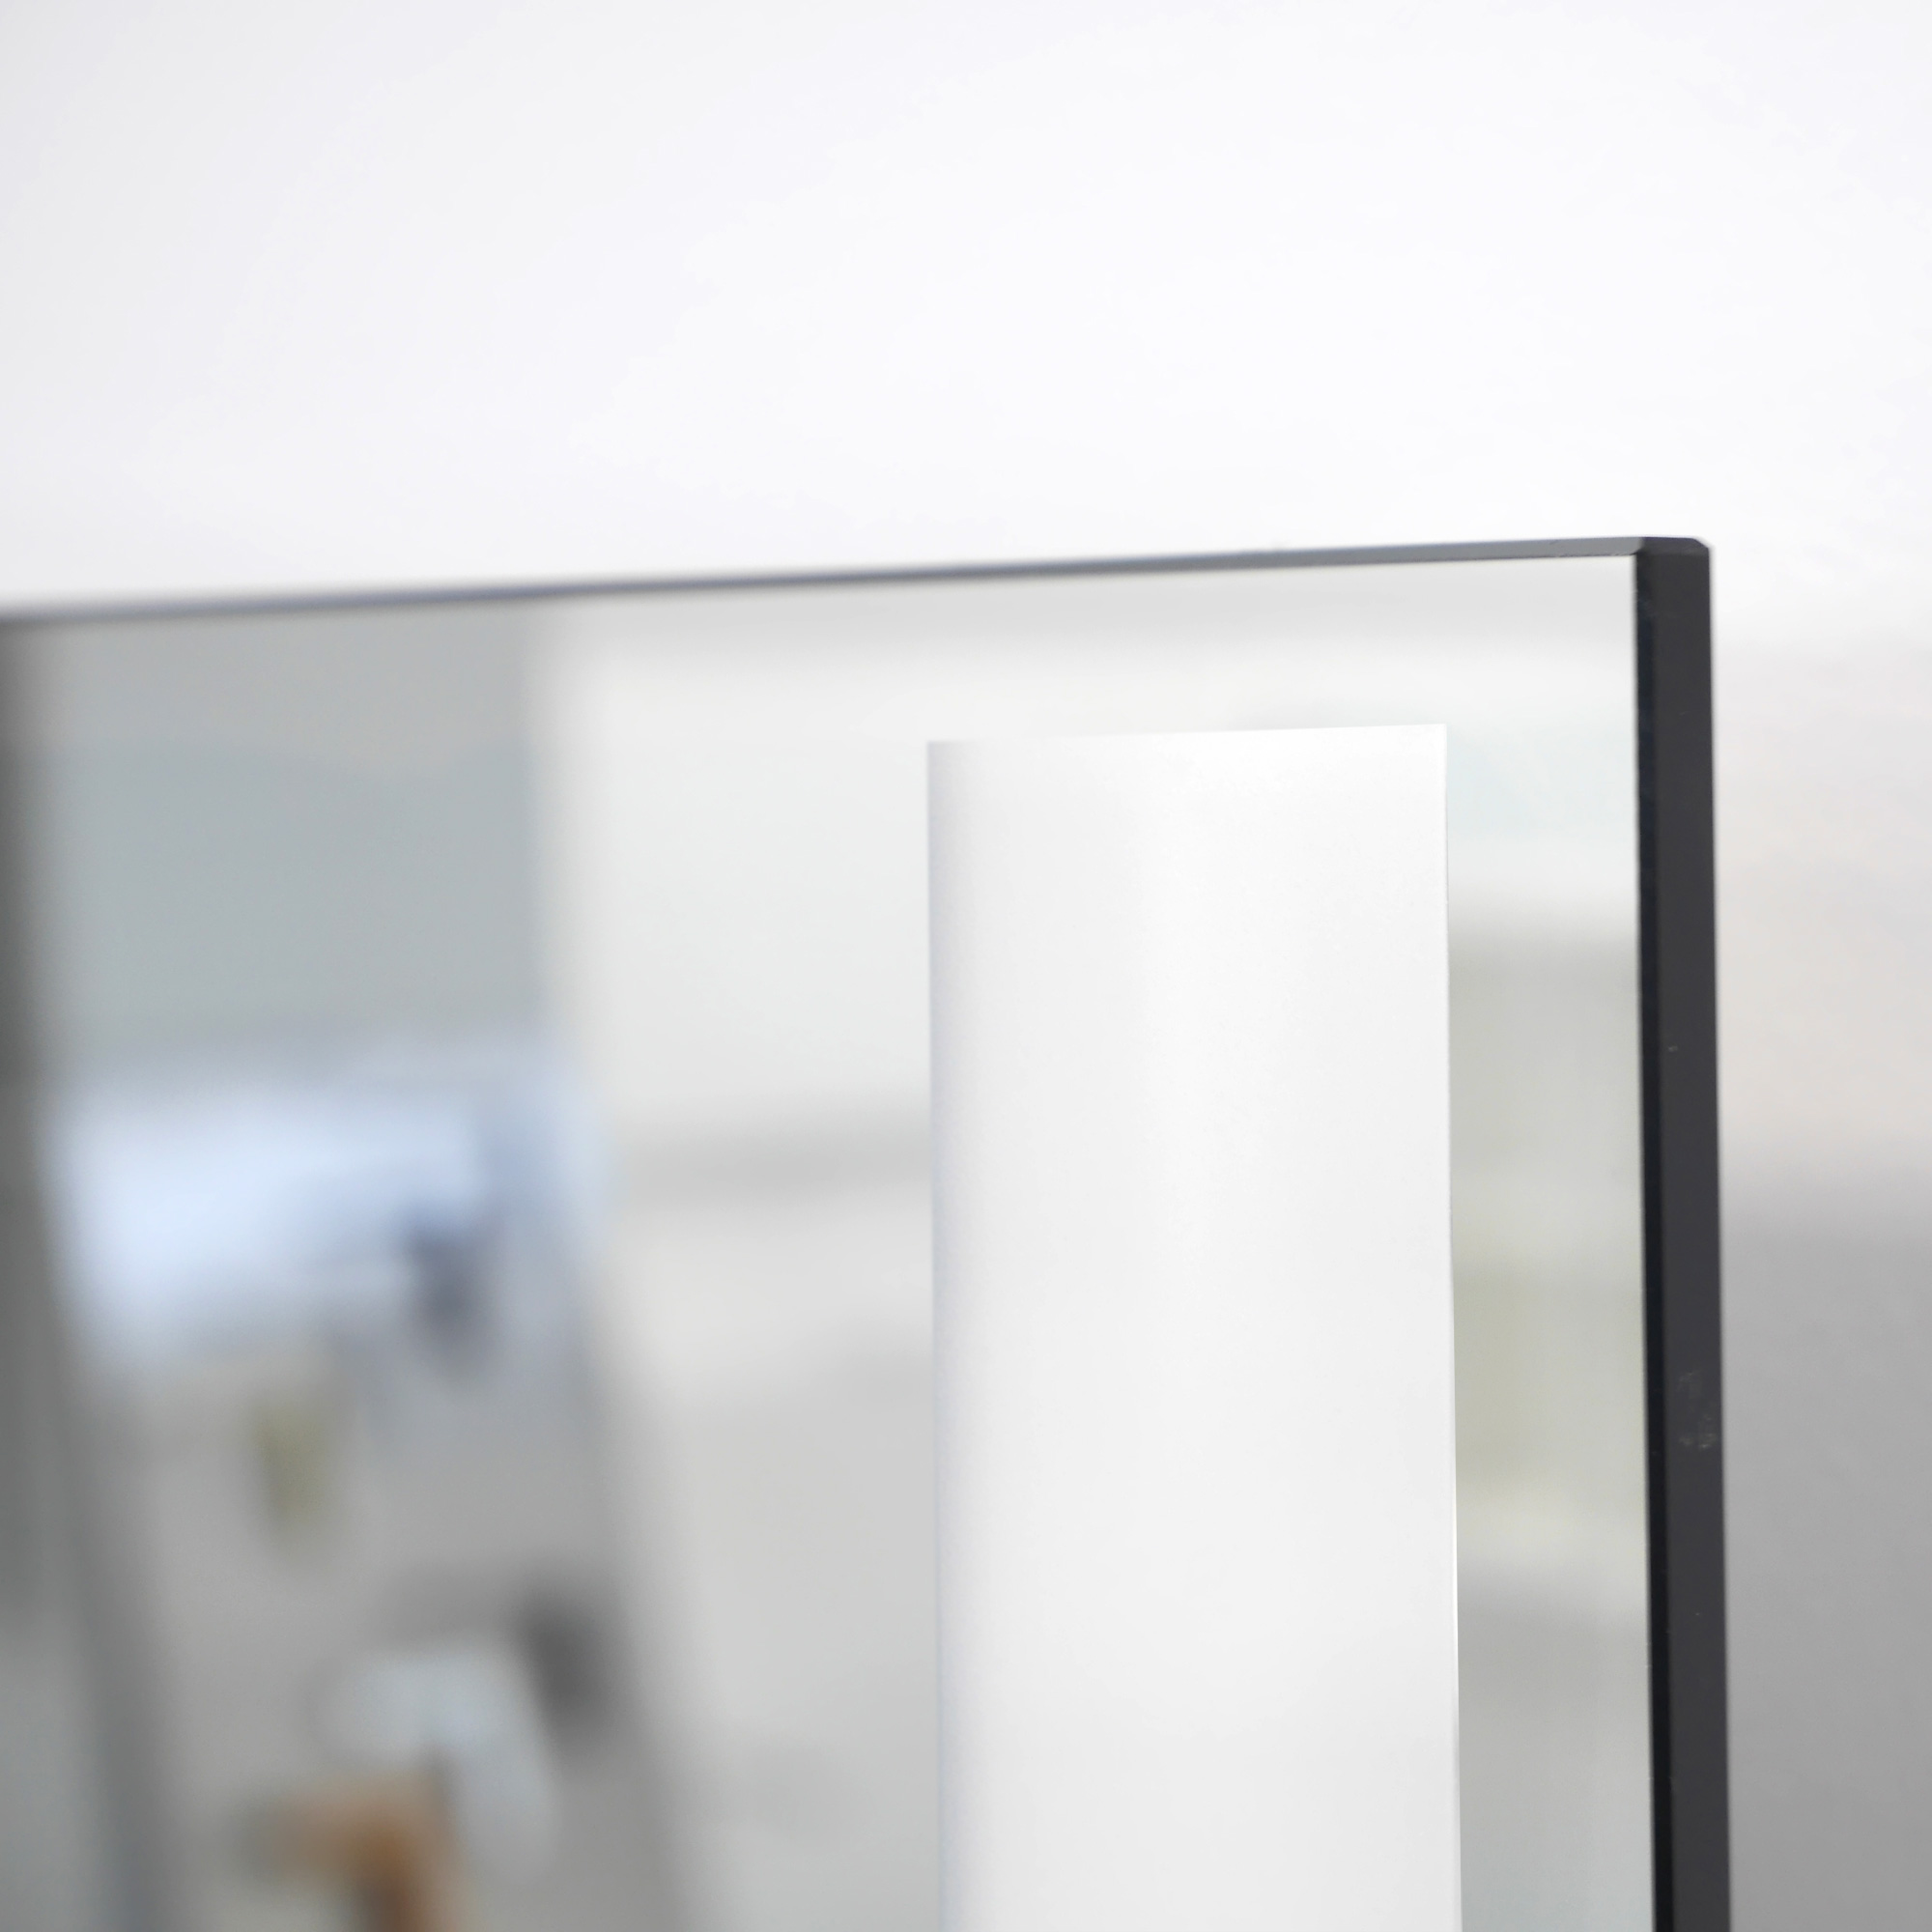 Super flat mirror heating panel with LED light strips